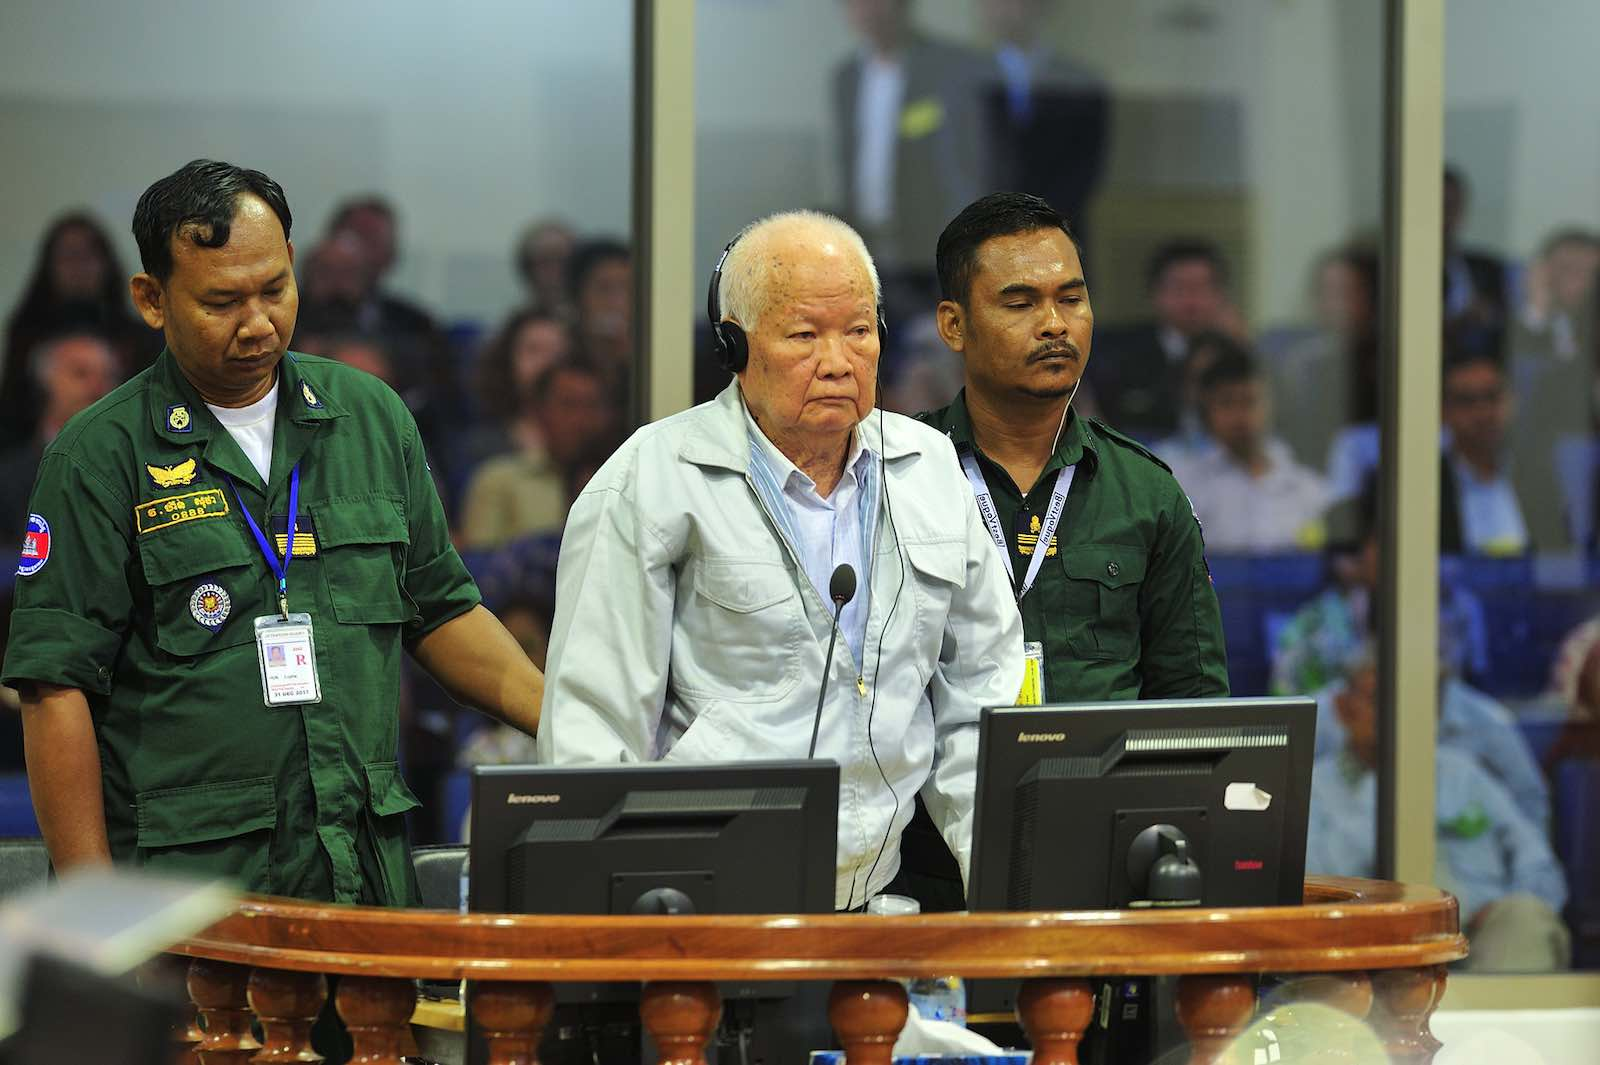 Pronouncement of the Judgement in Case 002/02 for Khieu Samphan on 16 November 2018, Extraordinary Chambers in the Courts of Cambodia (ECCC/Flickr)